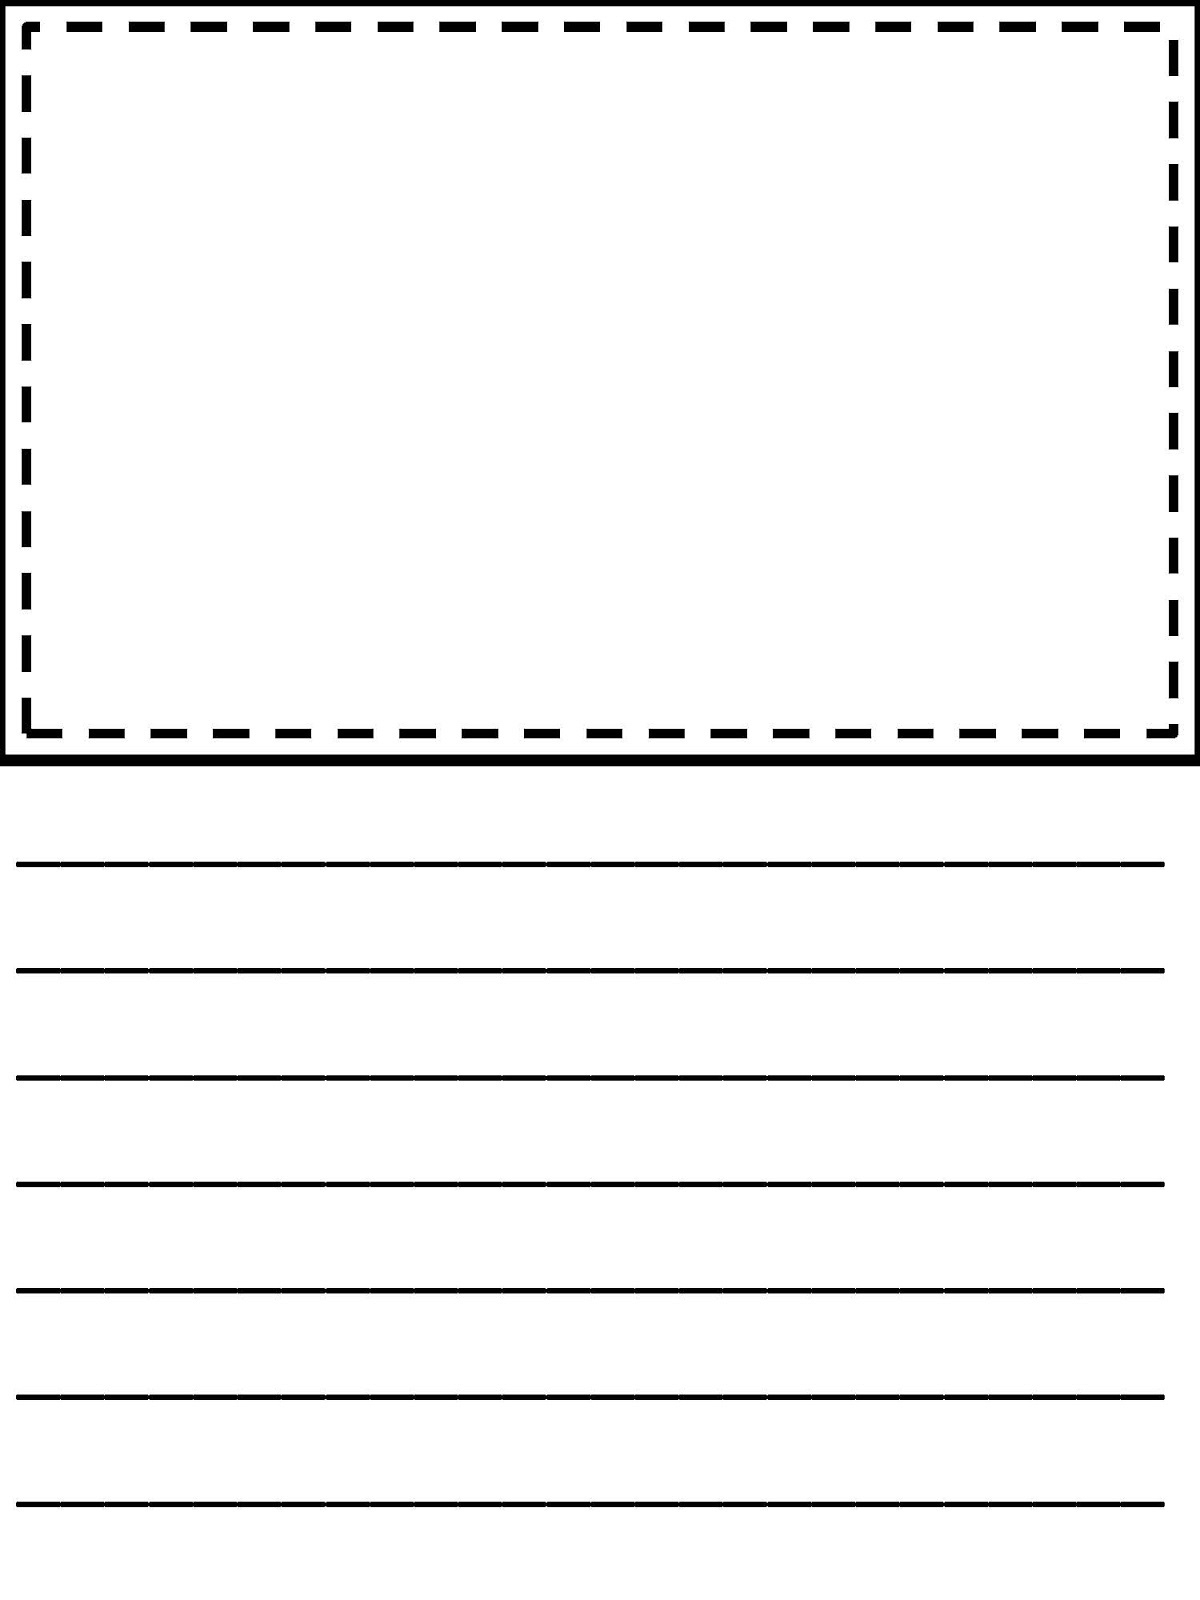 Third Grade Writing Paper | Homeshealth Handwriting Template - Free Printable Handwriting Paper